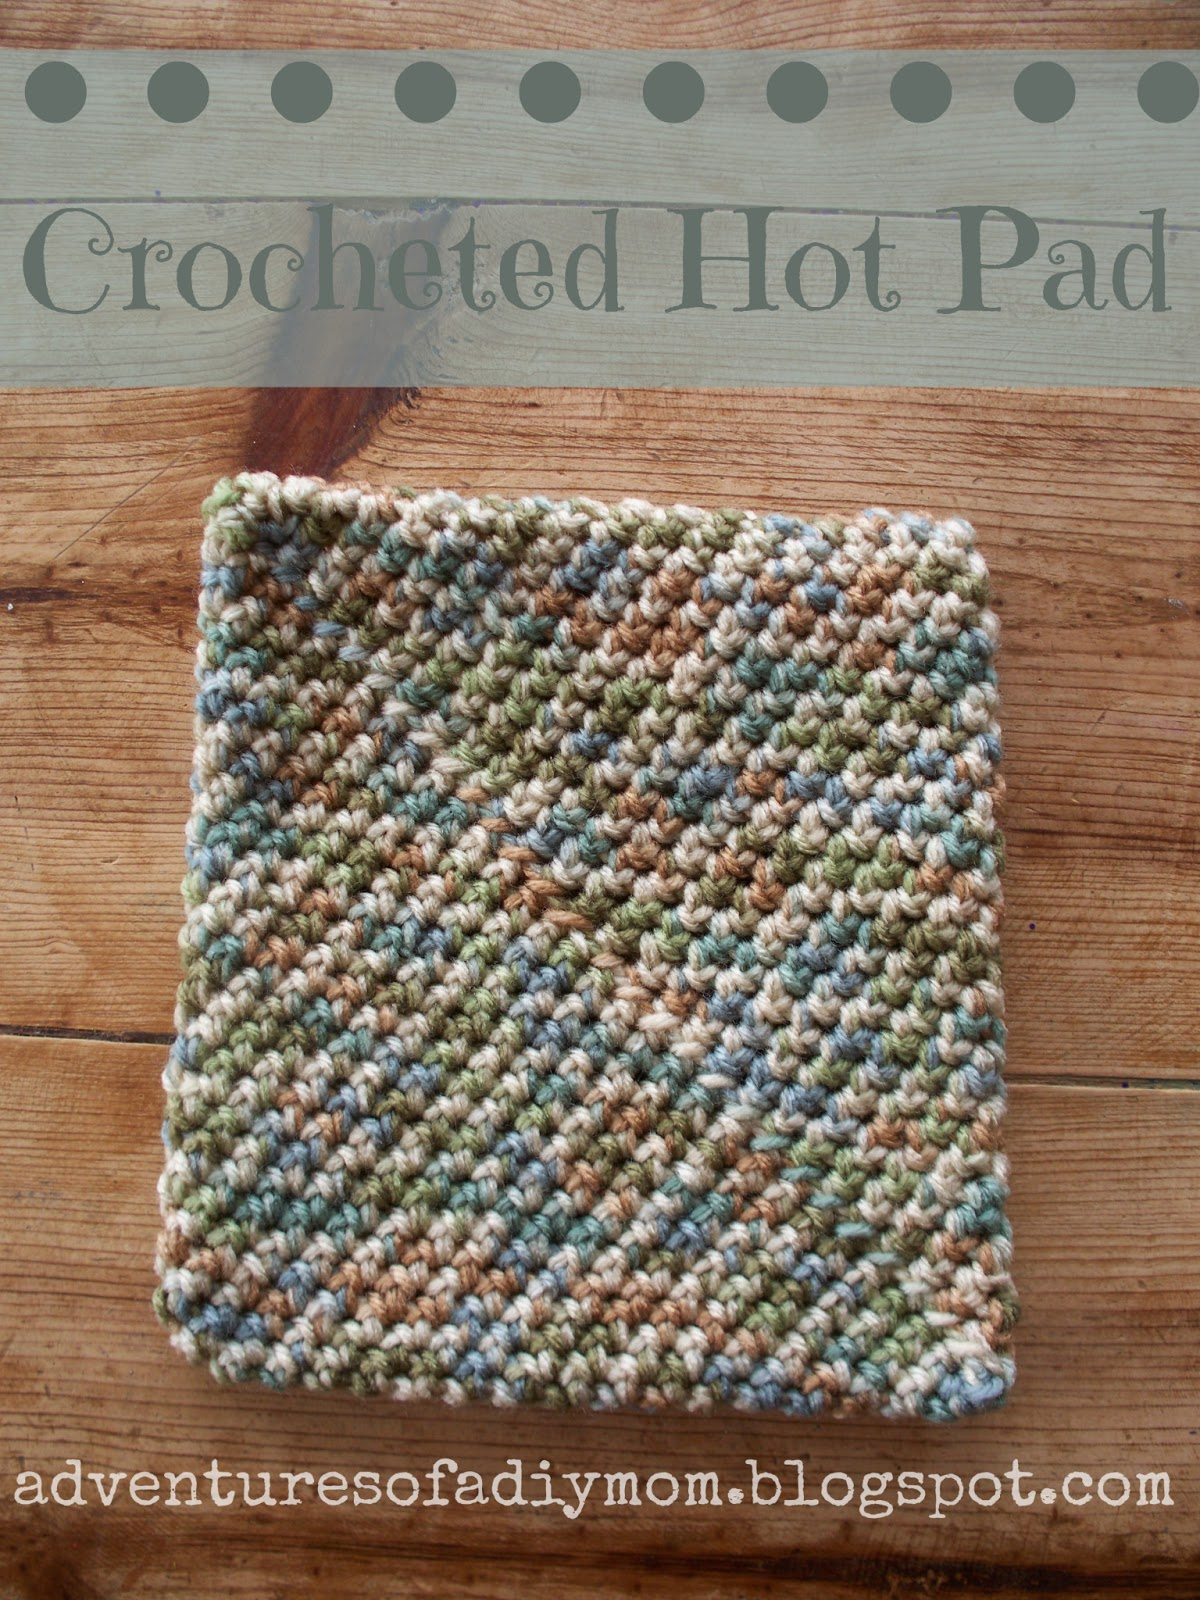 Adventures of a DIY Mom: How to Crochet a Hotpad - Super easy version!